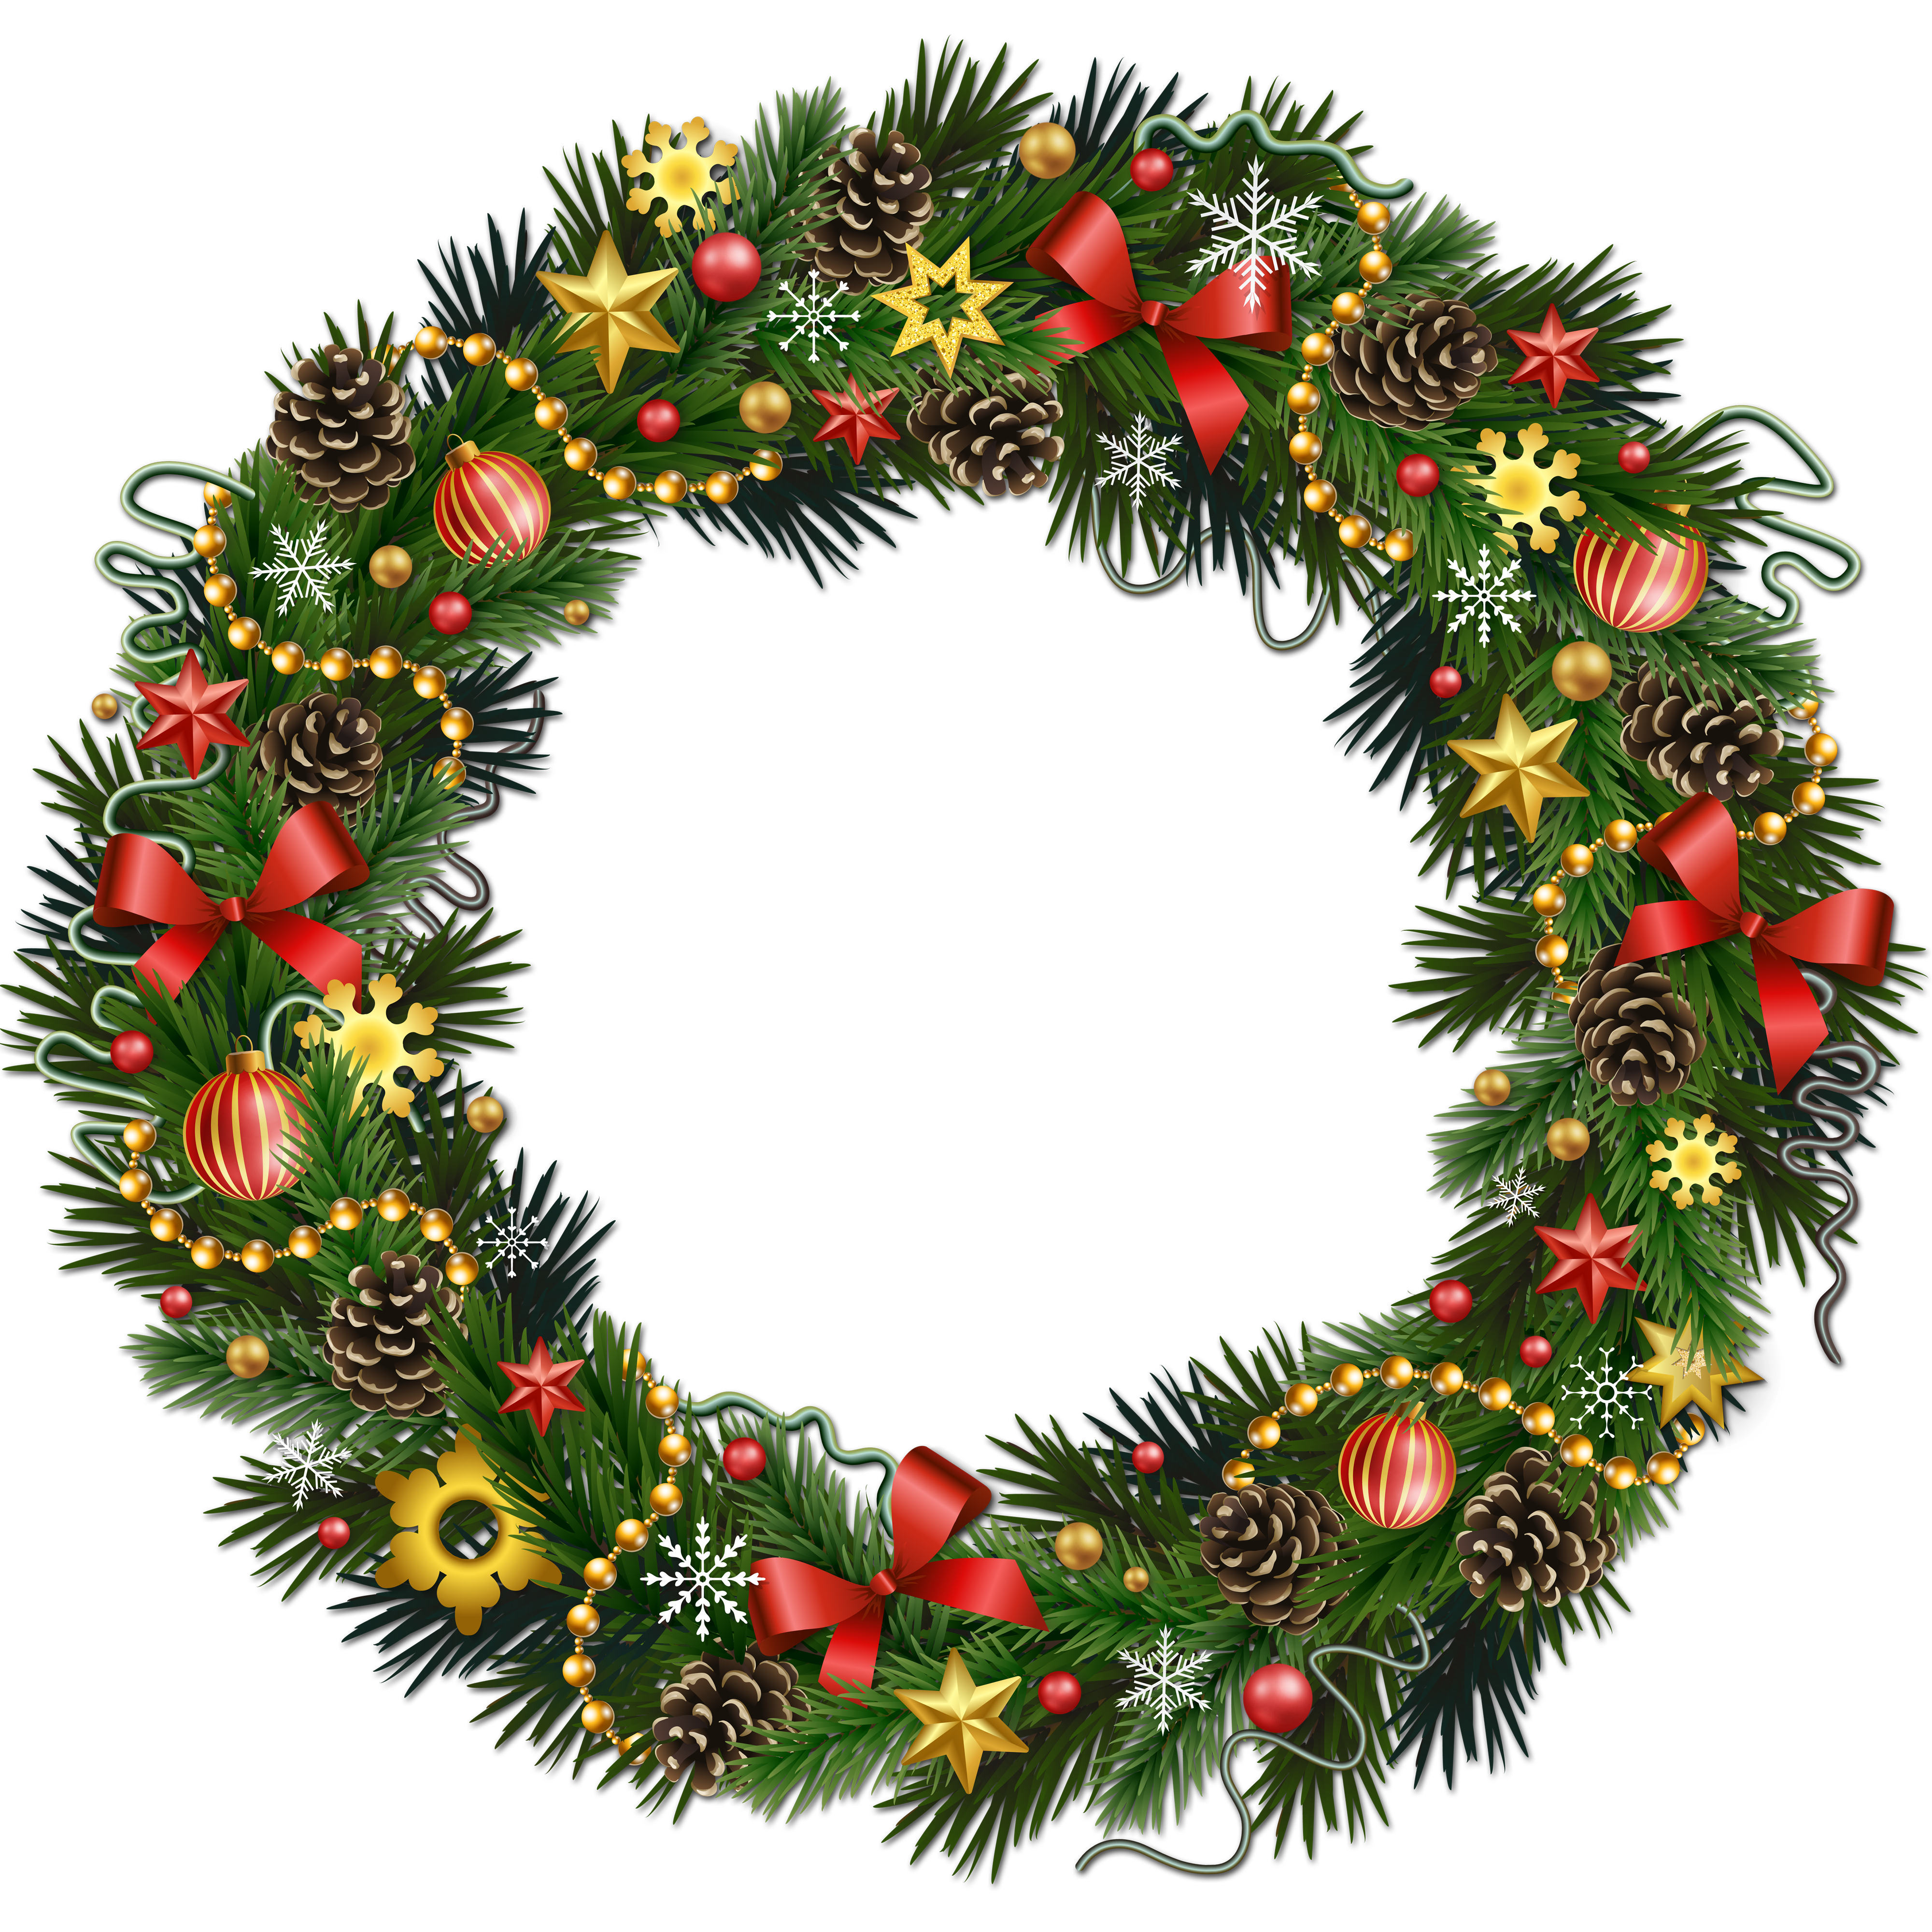 Wreath clipart transparent background Clipart Christmas christmas holly clipart